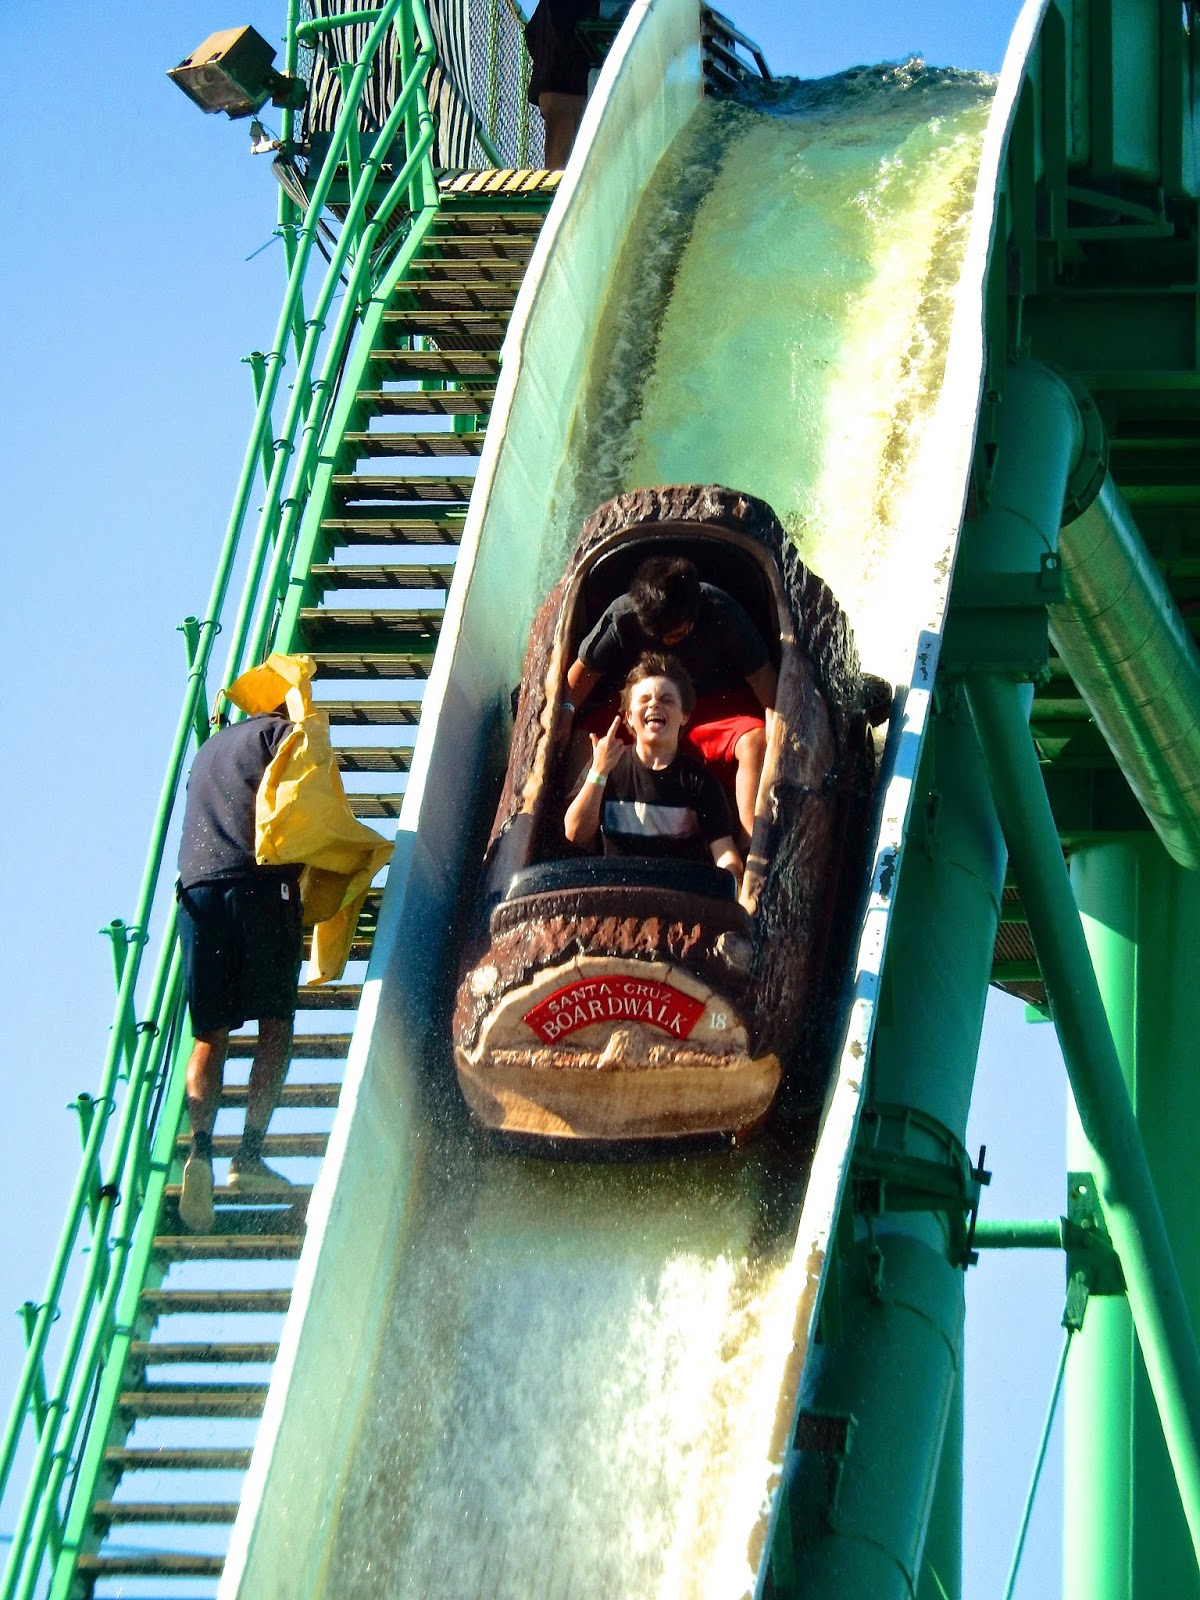 Logger S Revenge Was Built At A Time When Vast Majority Of Log Flumes Still Stuck Close To The Ground Near By Marriott Great America Opened With